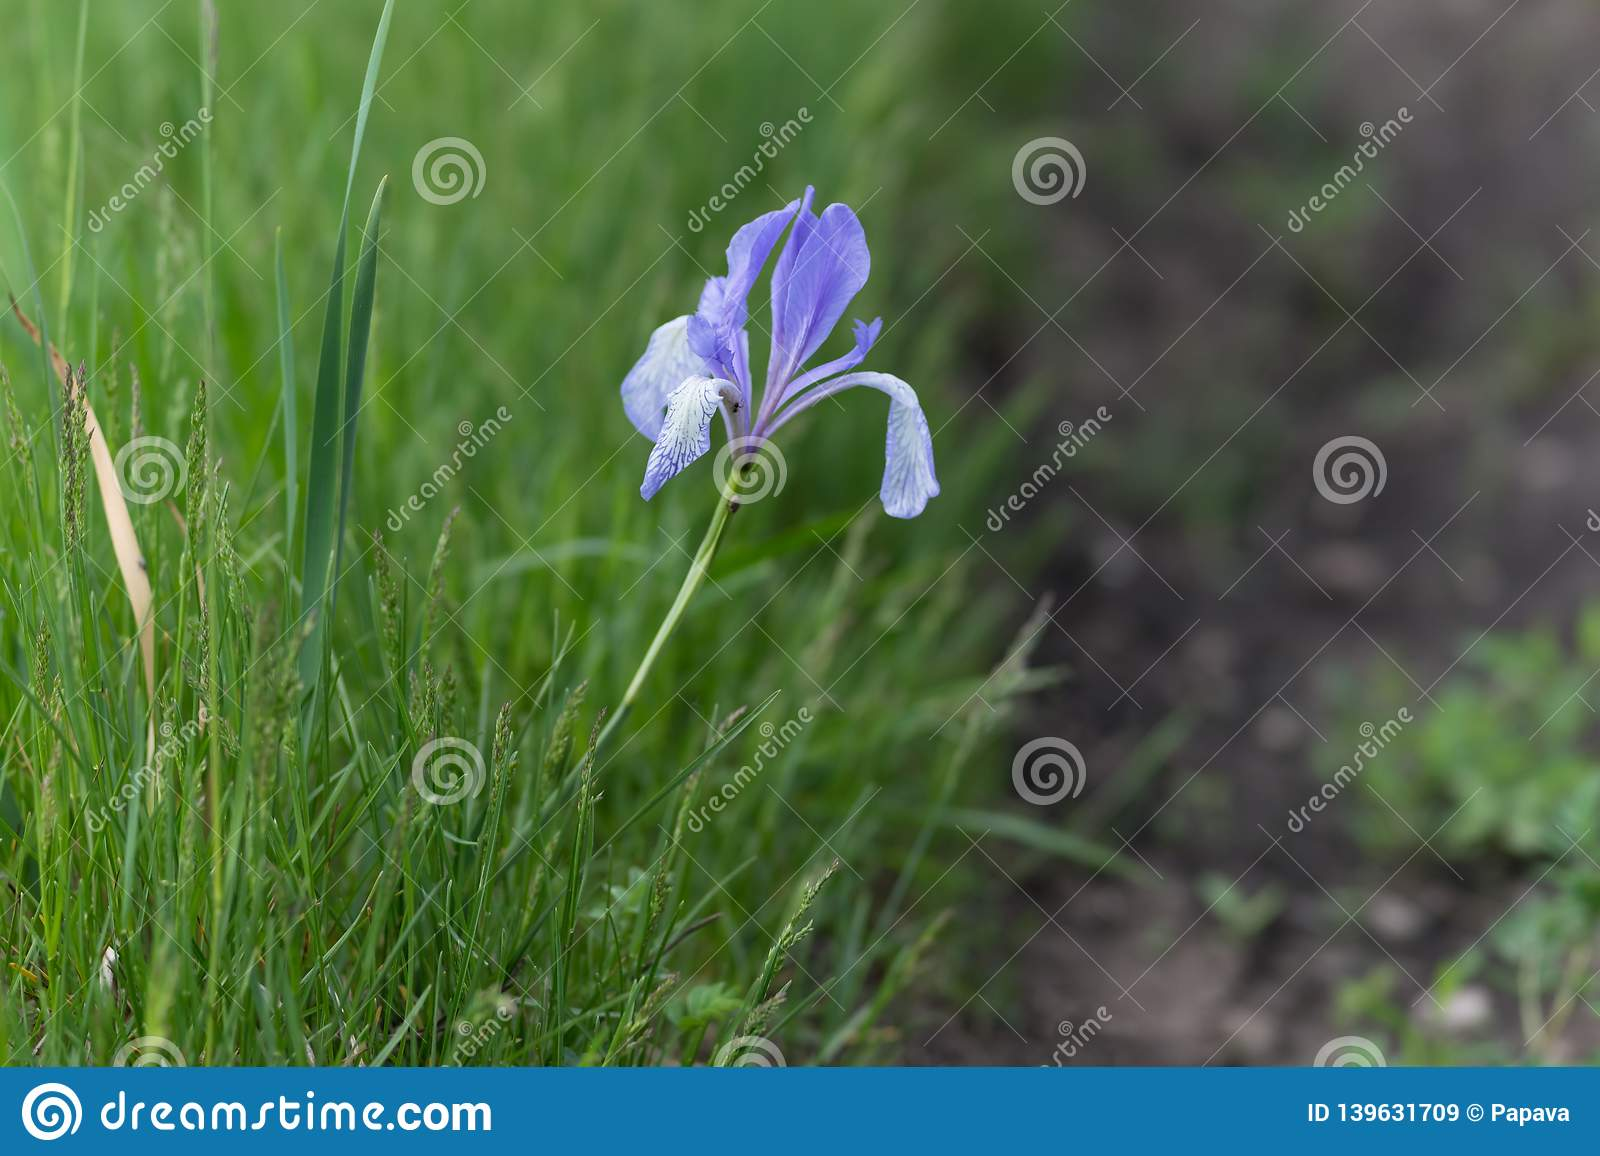 Blue flag or Siberian Iris lat. Iris sibirica grows on the side of a dirt road